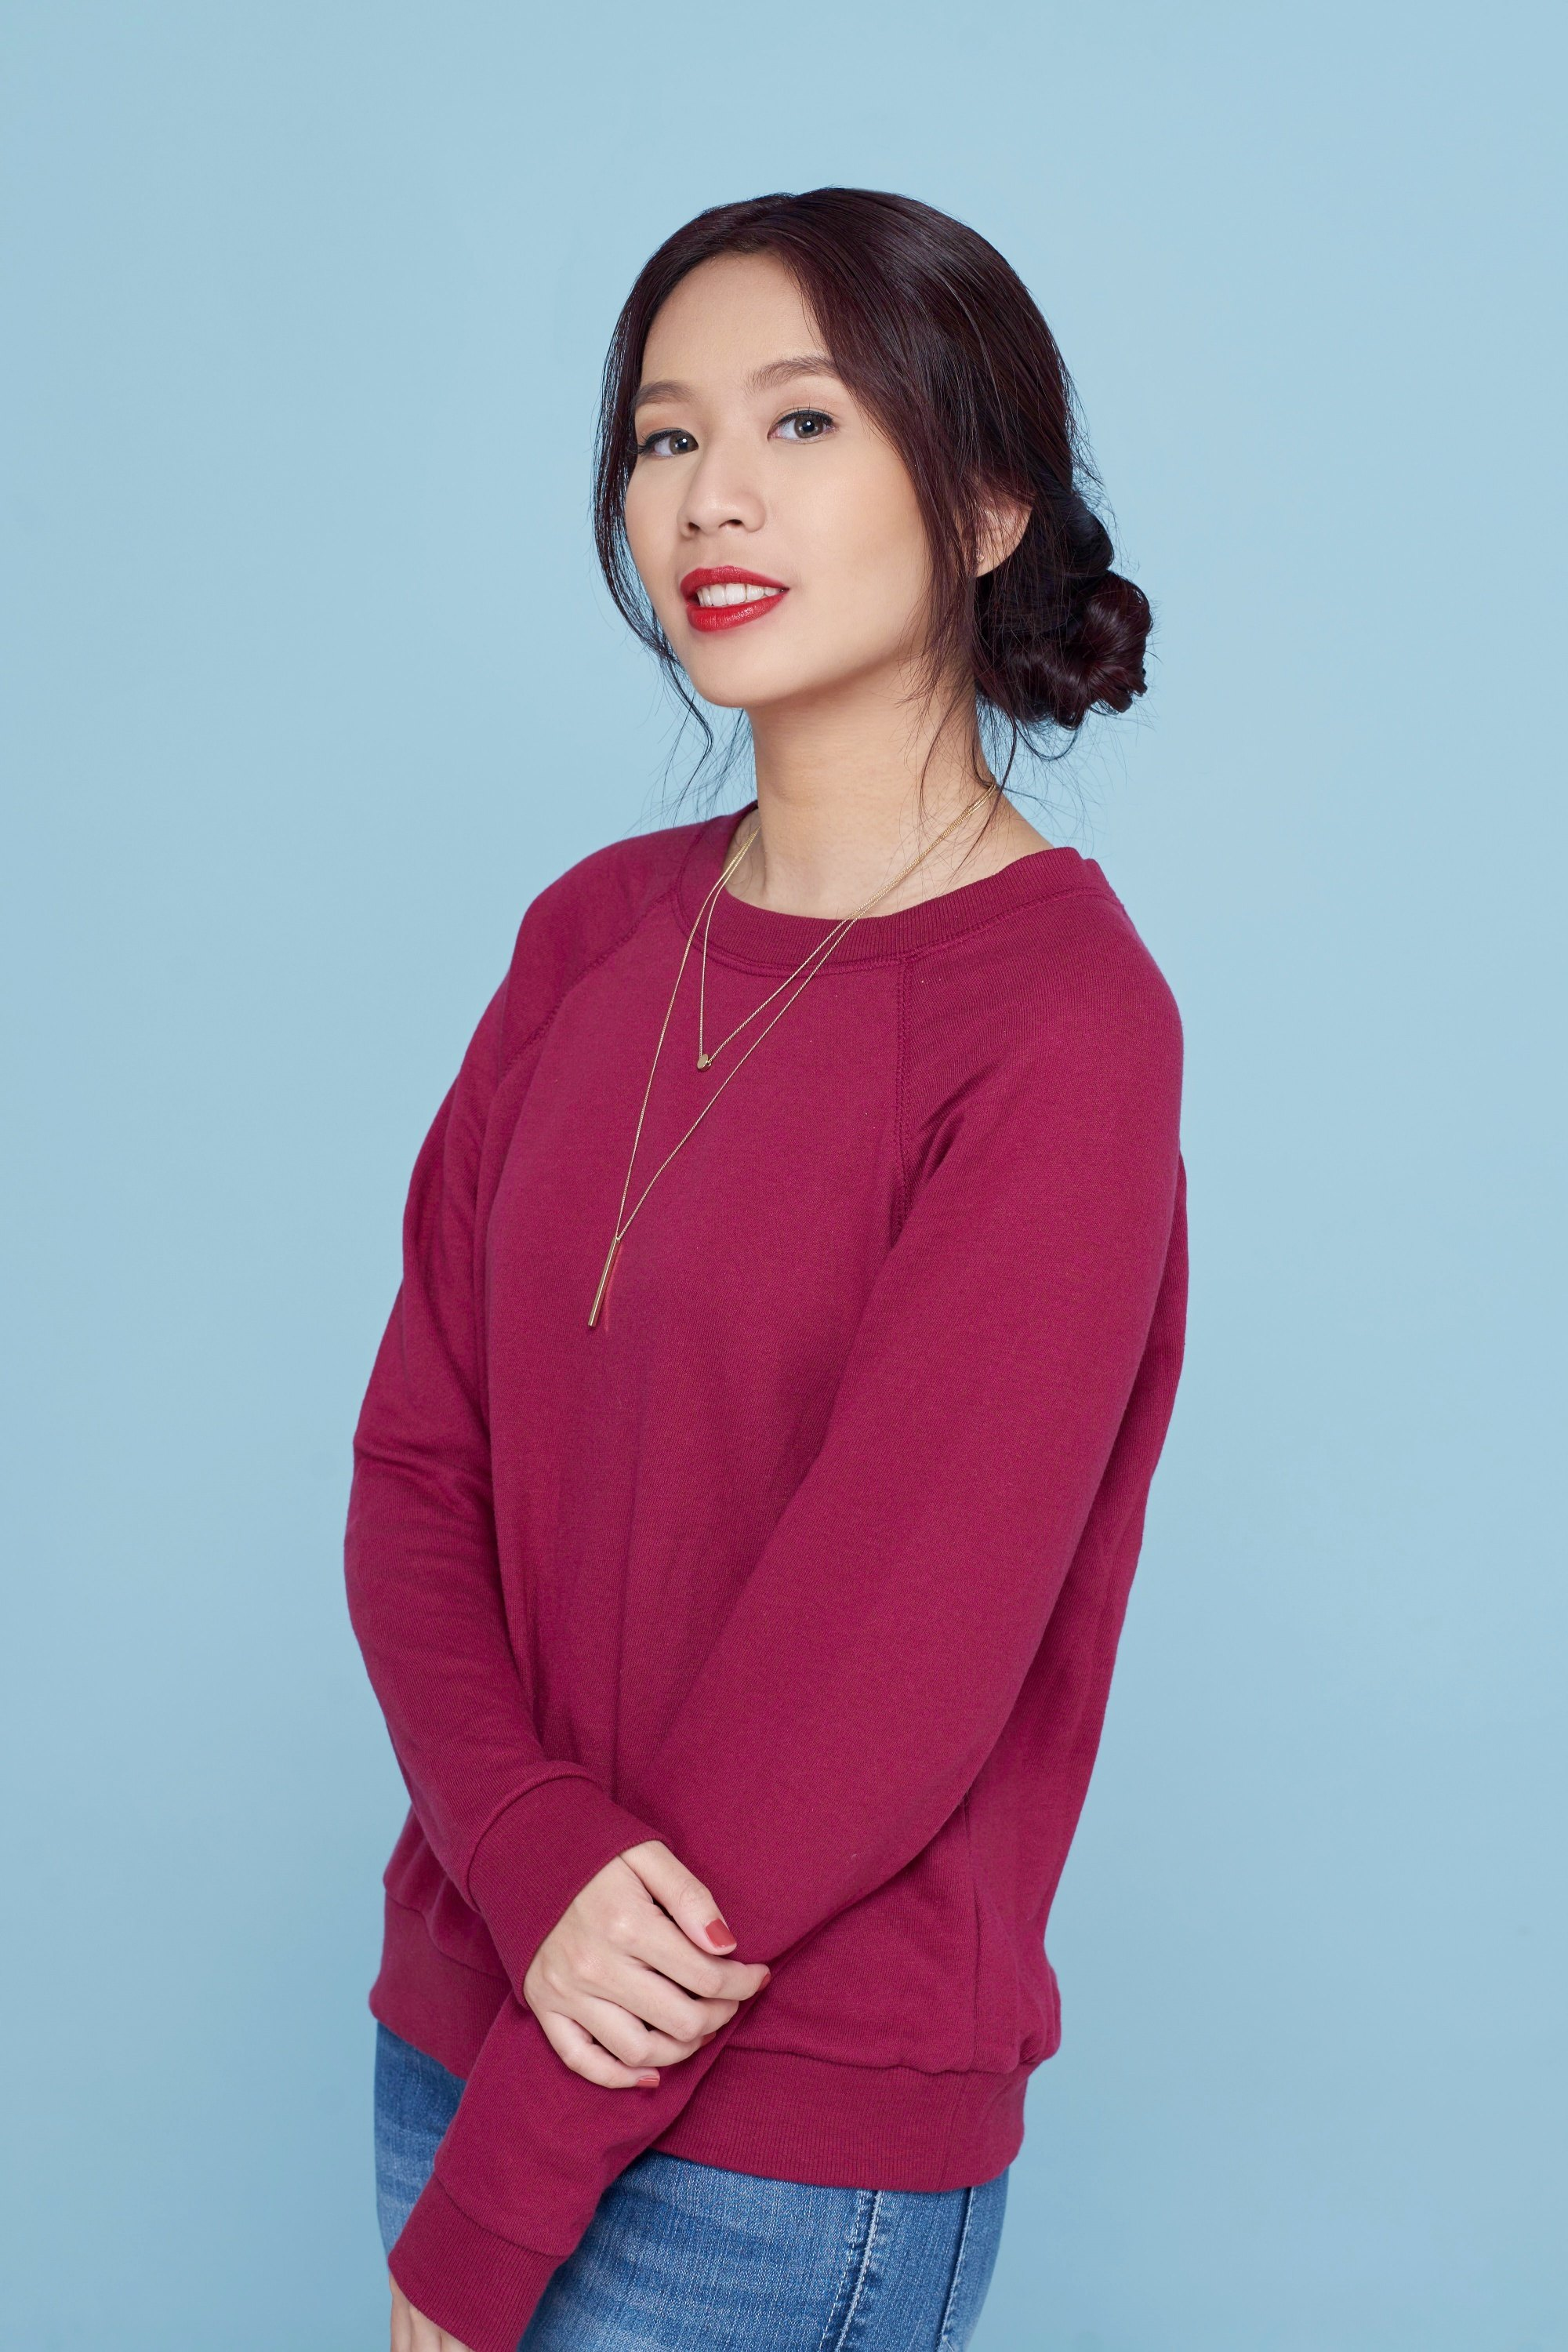 International Women's Day: Asian woman with long black hair in a banana bun wearing a dark pink sweater